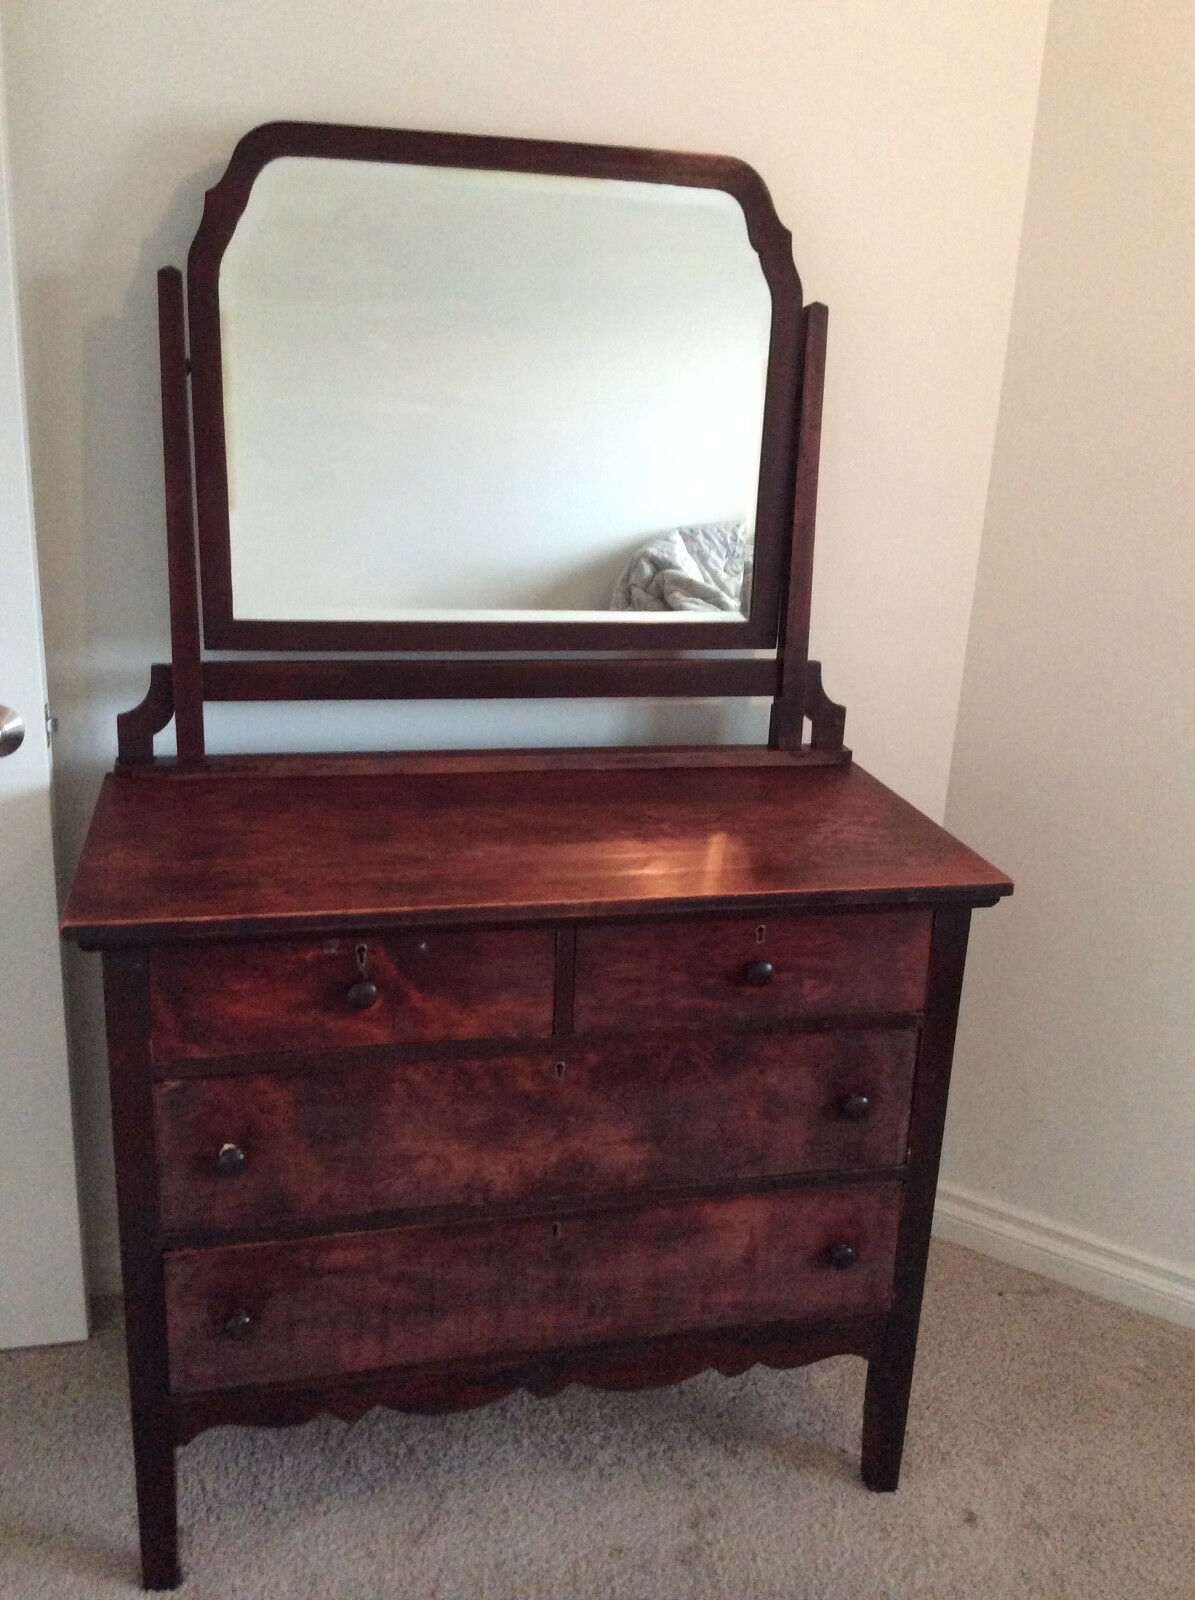 Antique dresser attached mirror vintage wood chest drawers